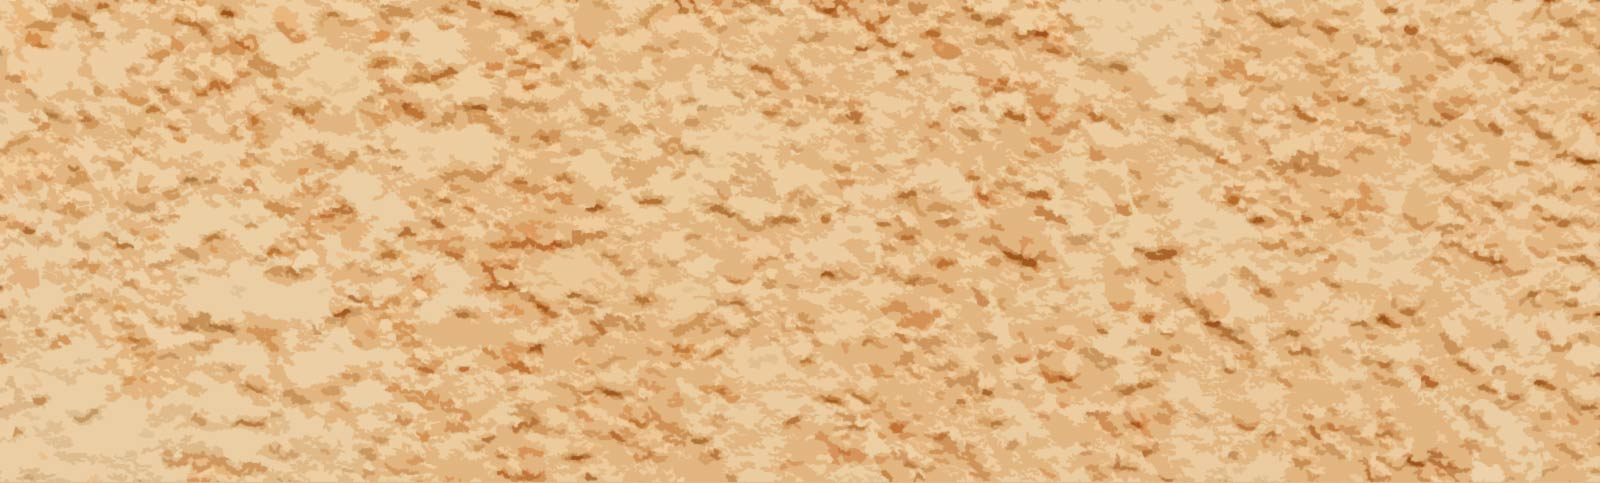 Should You Use Stucco for Your Next Home Improvement Project?